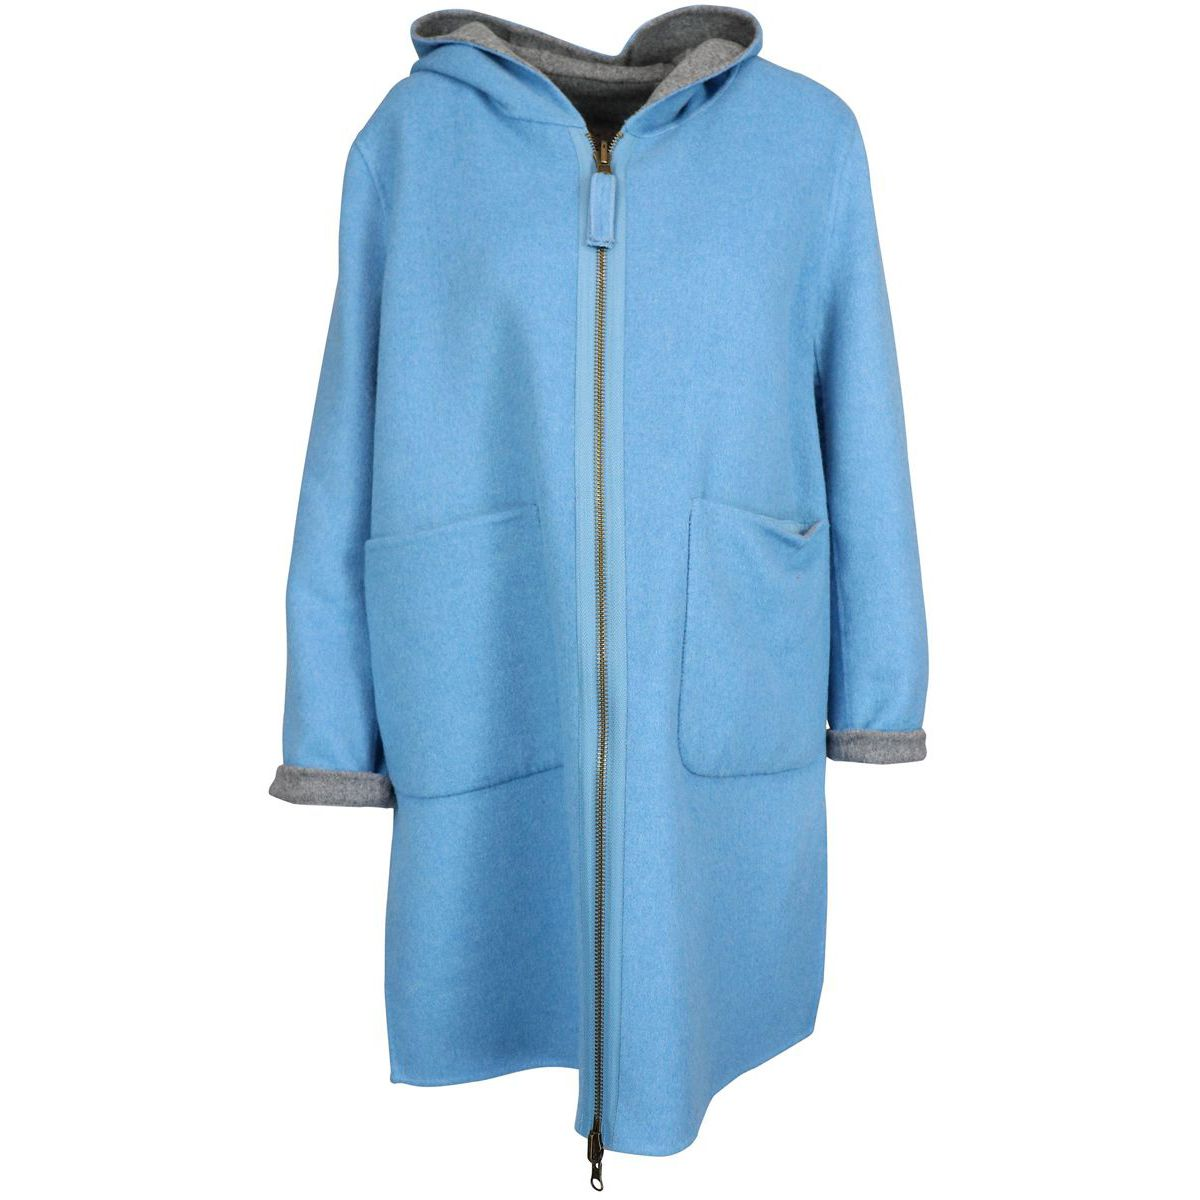 Double cout jacket Blue / gray Maliparmi